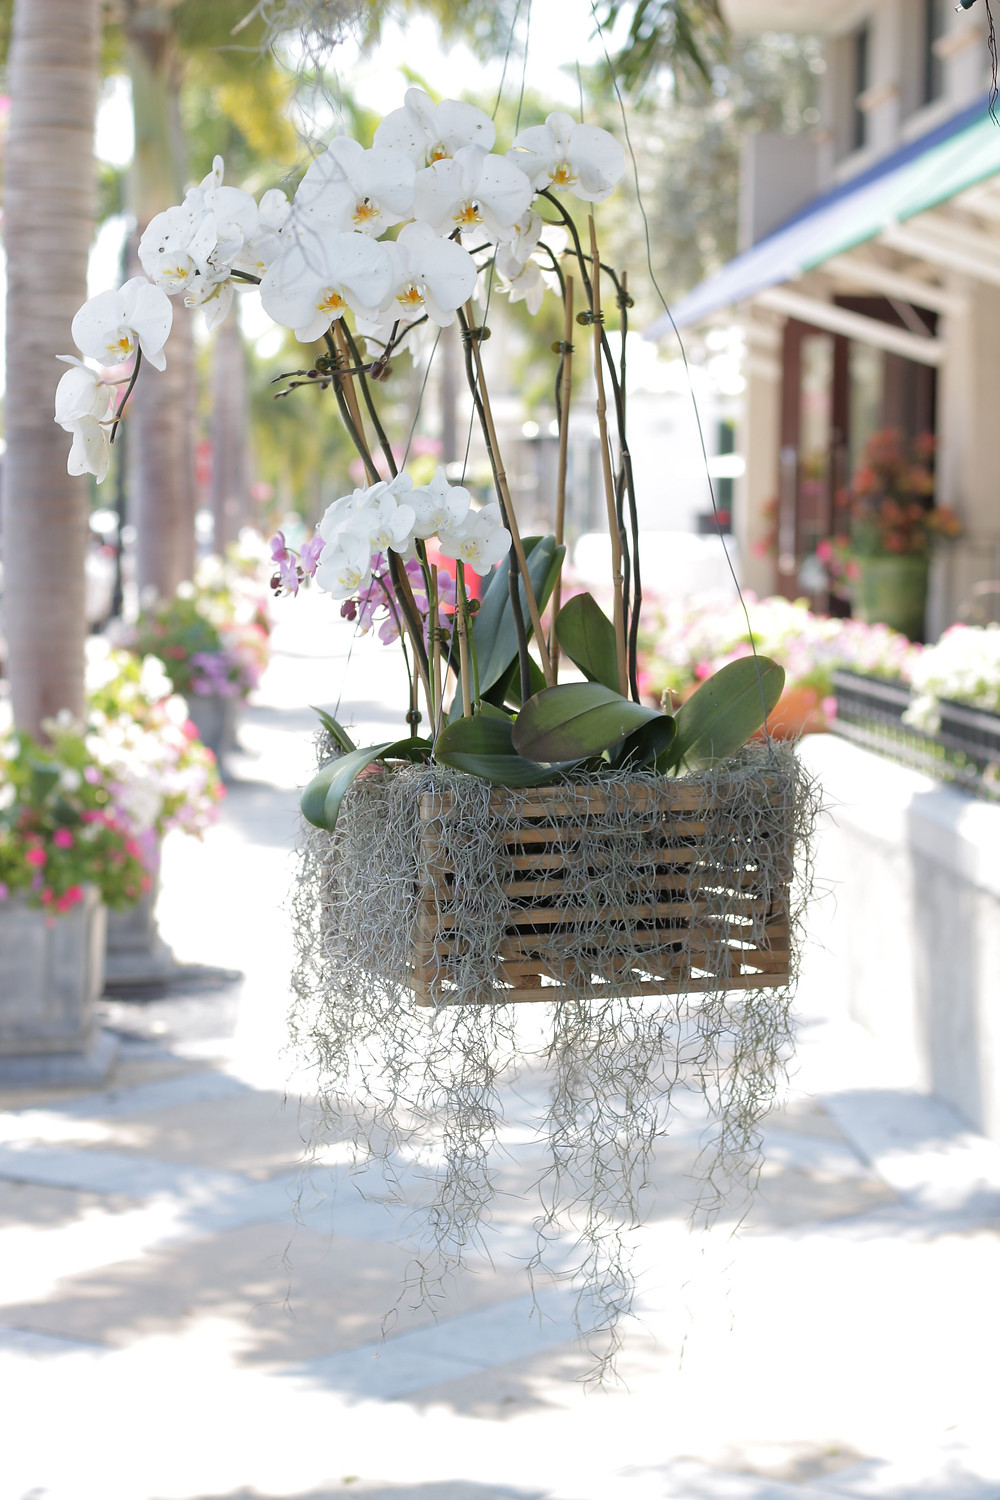 Wooden crate box containing Spanish moss hanging on the sides and a white orchid